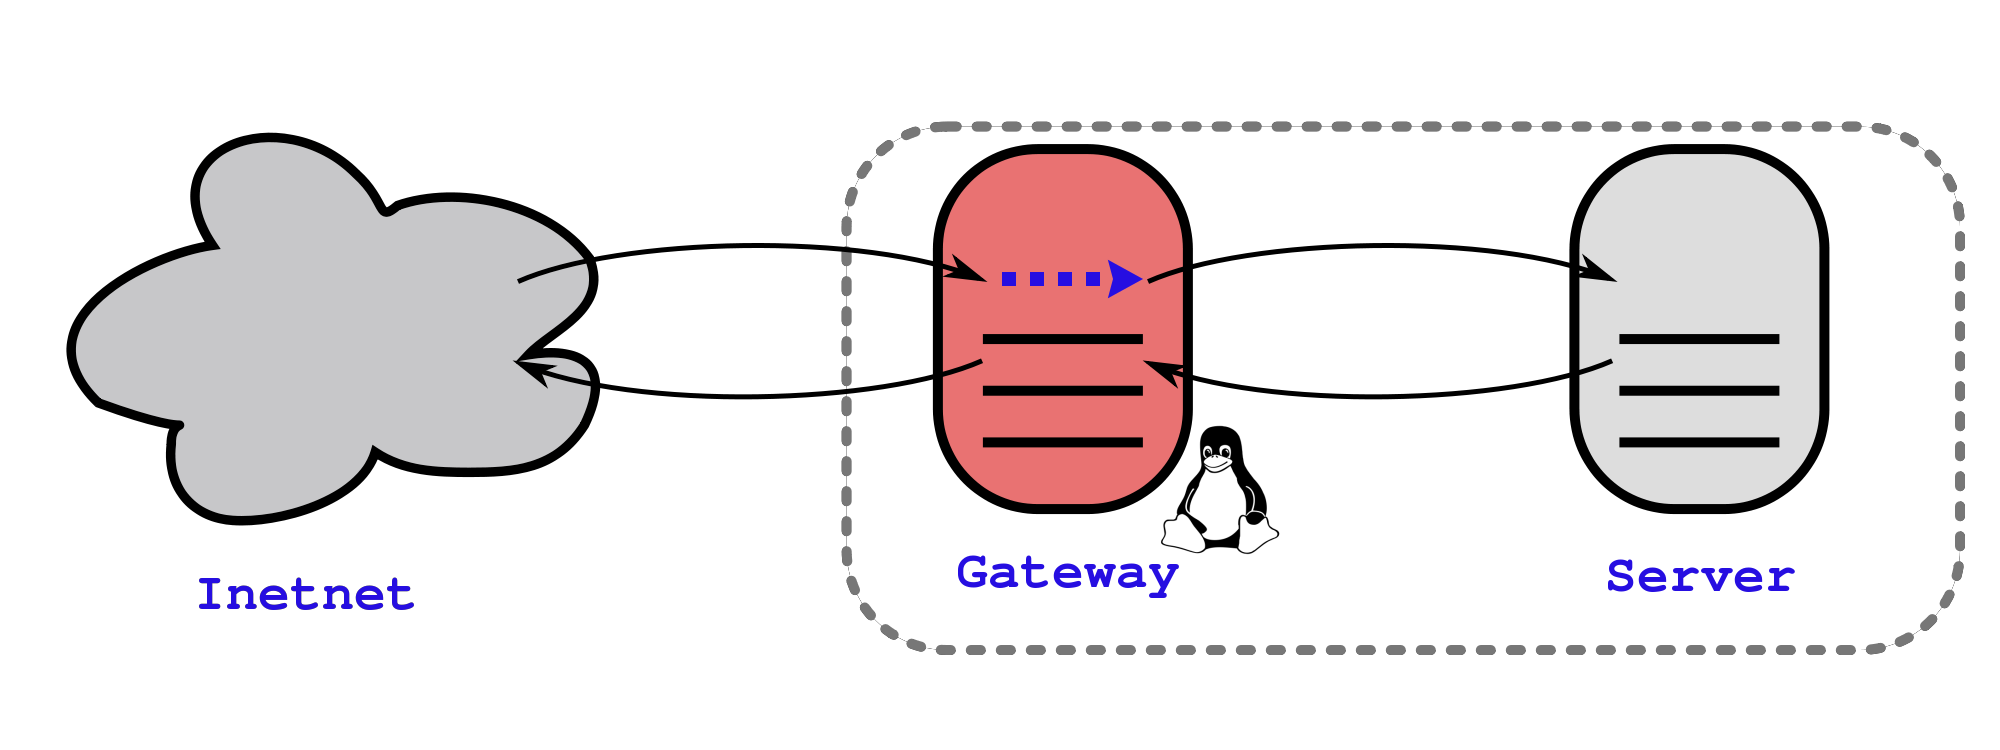 How To Set Up Gateway Using Iptables And Route On Linux Systutorials